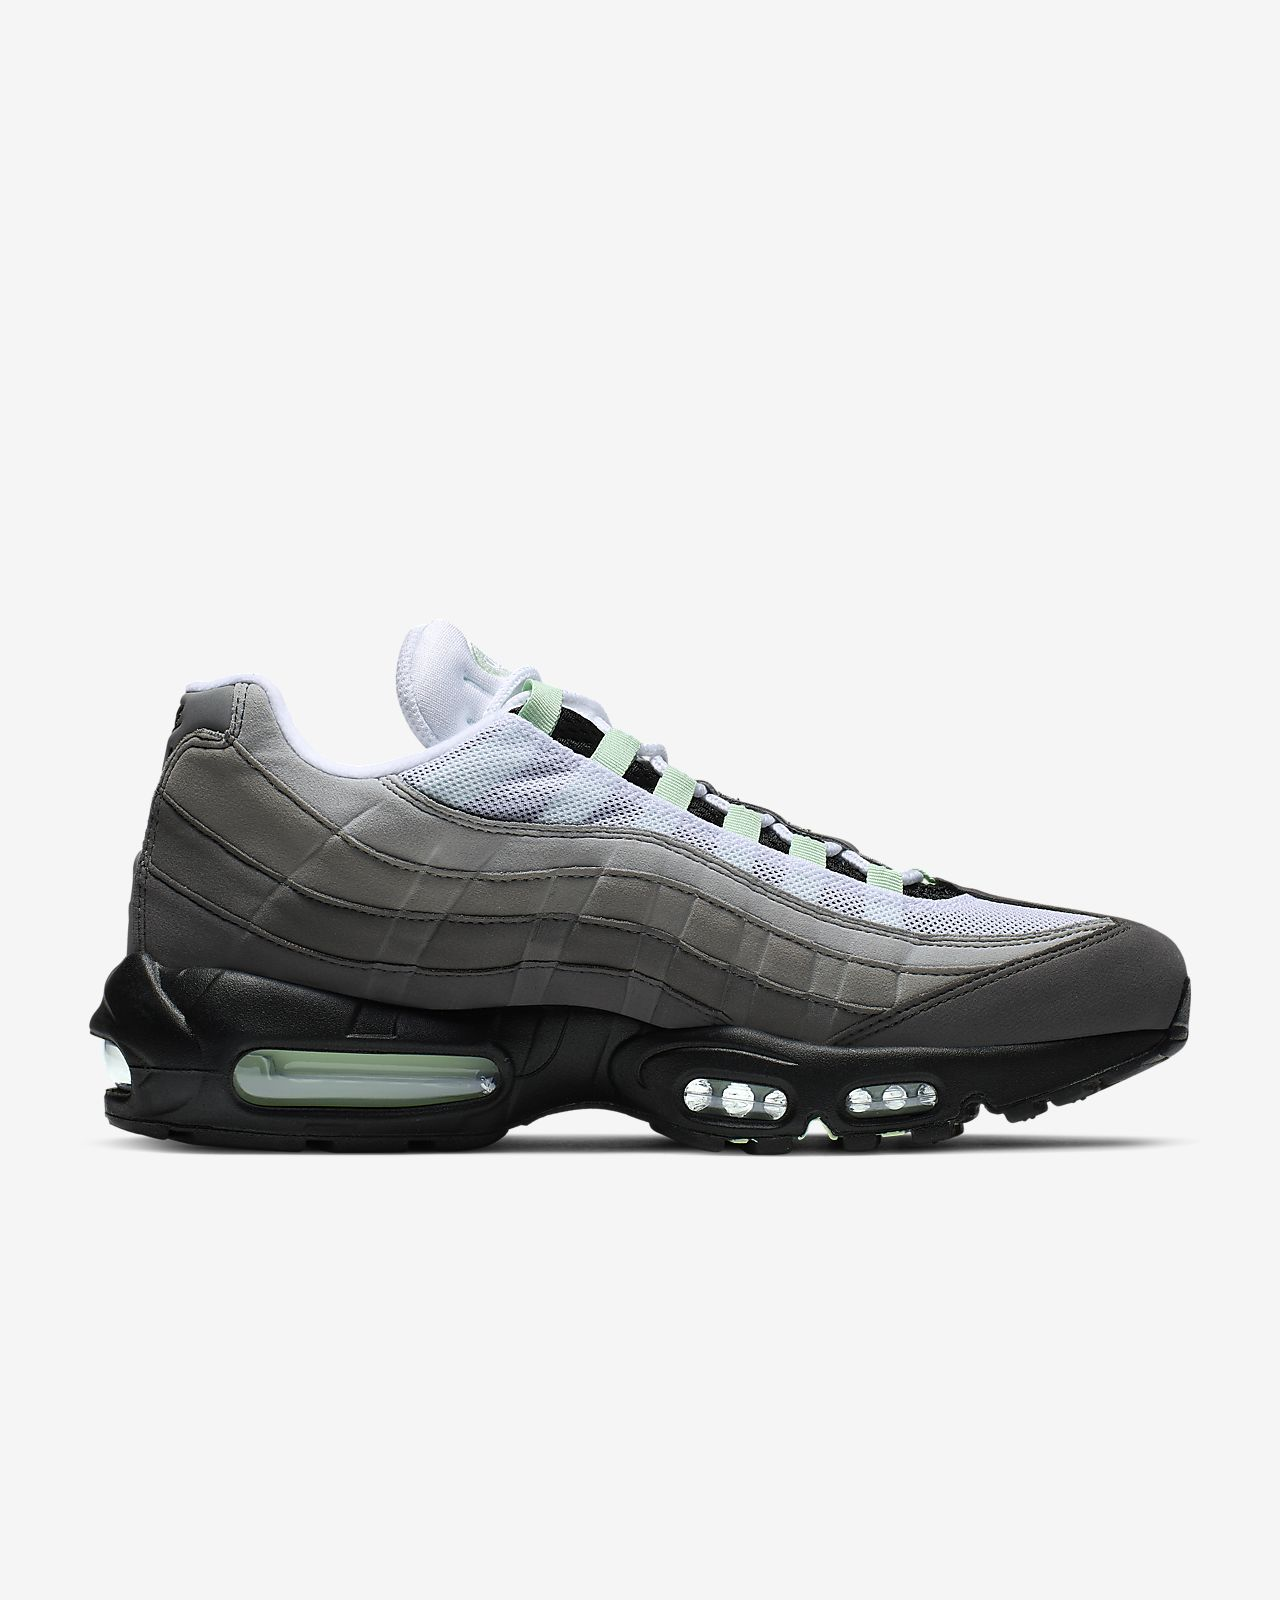 nouveau style 28fd5 896ee Chaussure Nike Air Max 95 pour Homme